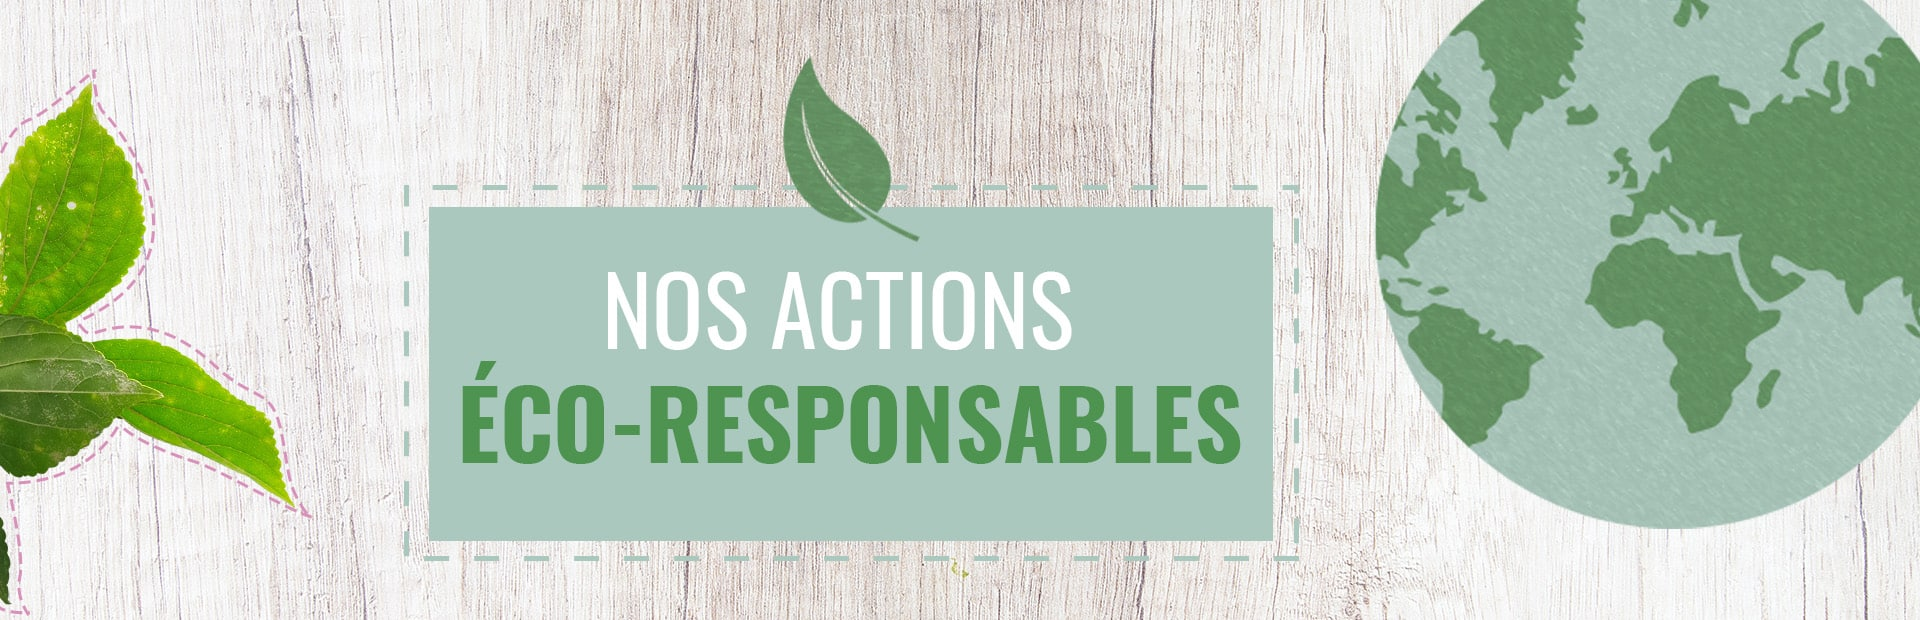 hero-page-éco-responsable-actions